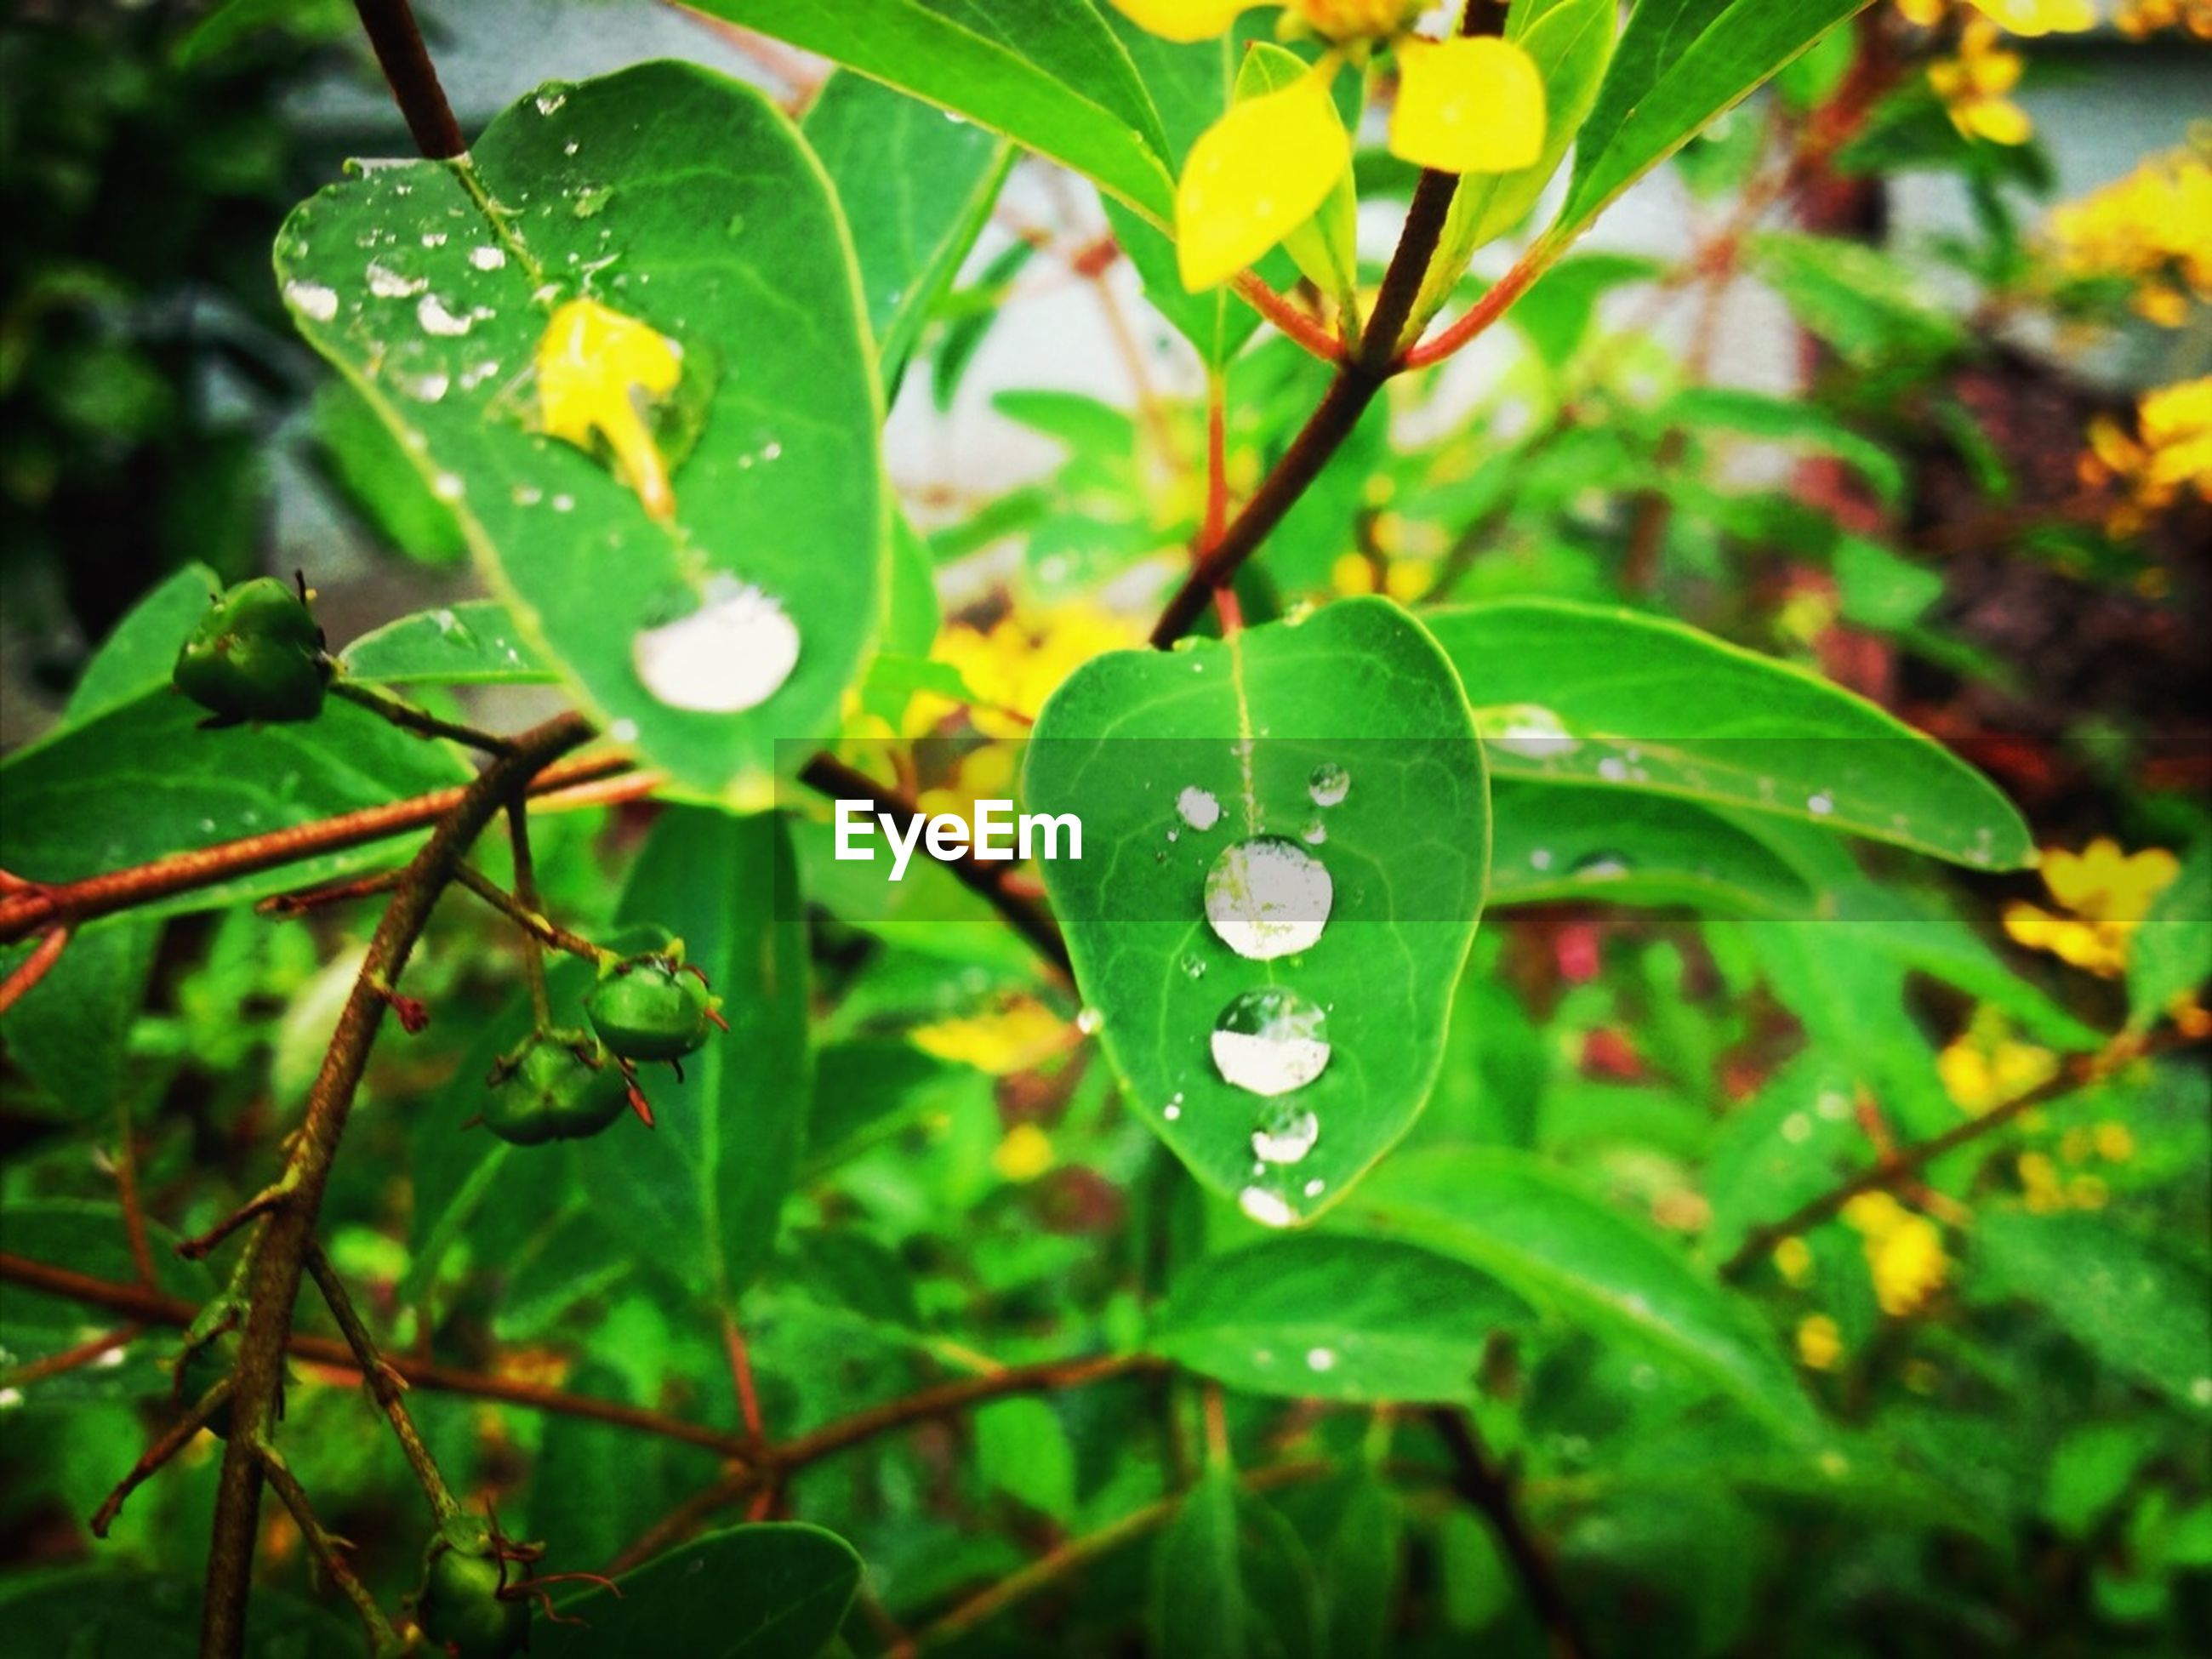 leaf, green color, growth, drop, close-up, water, wet, plant, nature, focus on foreground, freshness, beauty in nature, dew, green, selective focus, day, outdoors, fragility, leaves, no people